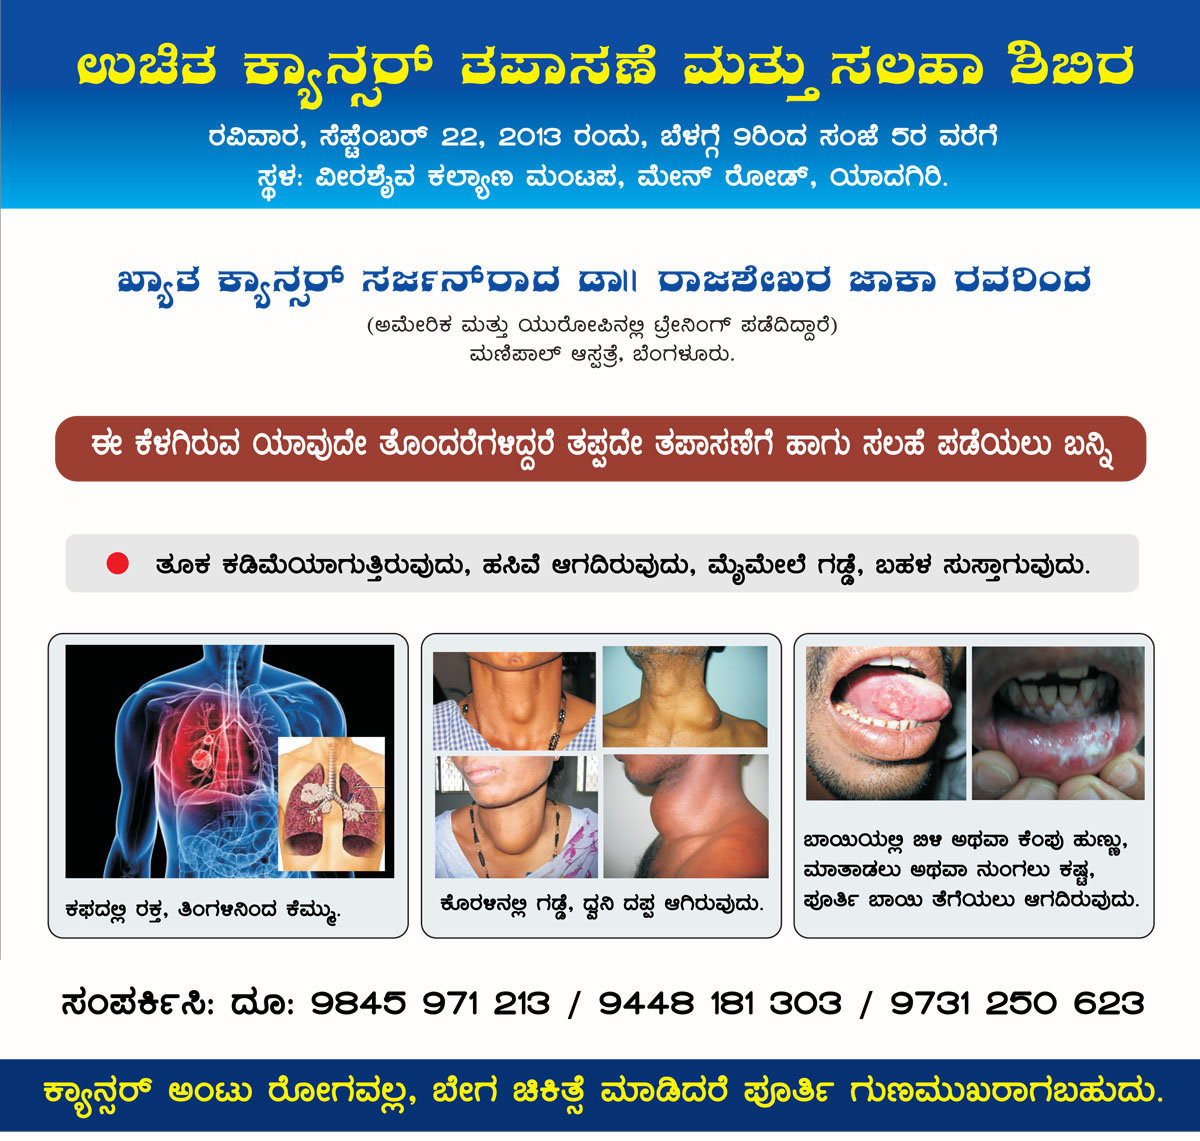 Cancer Camp Yadgir